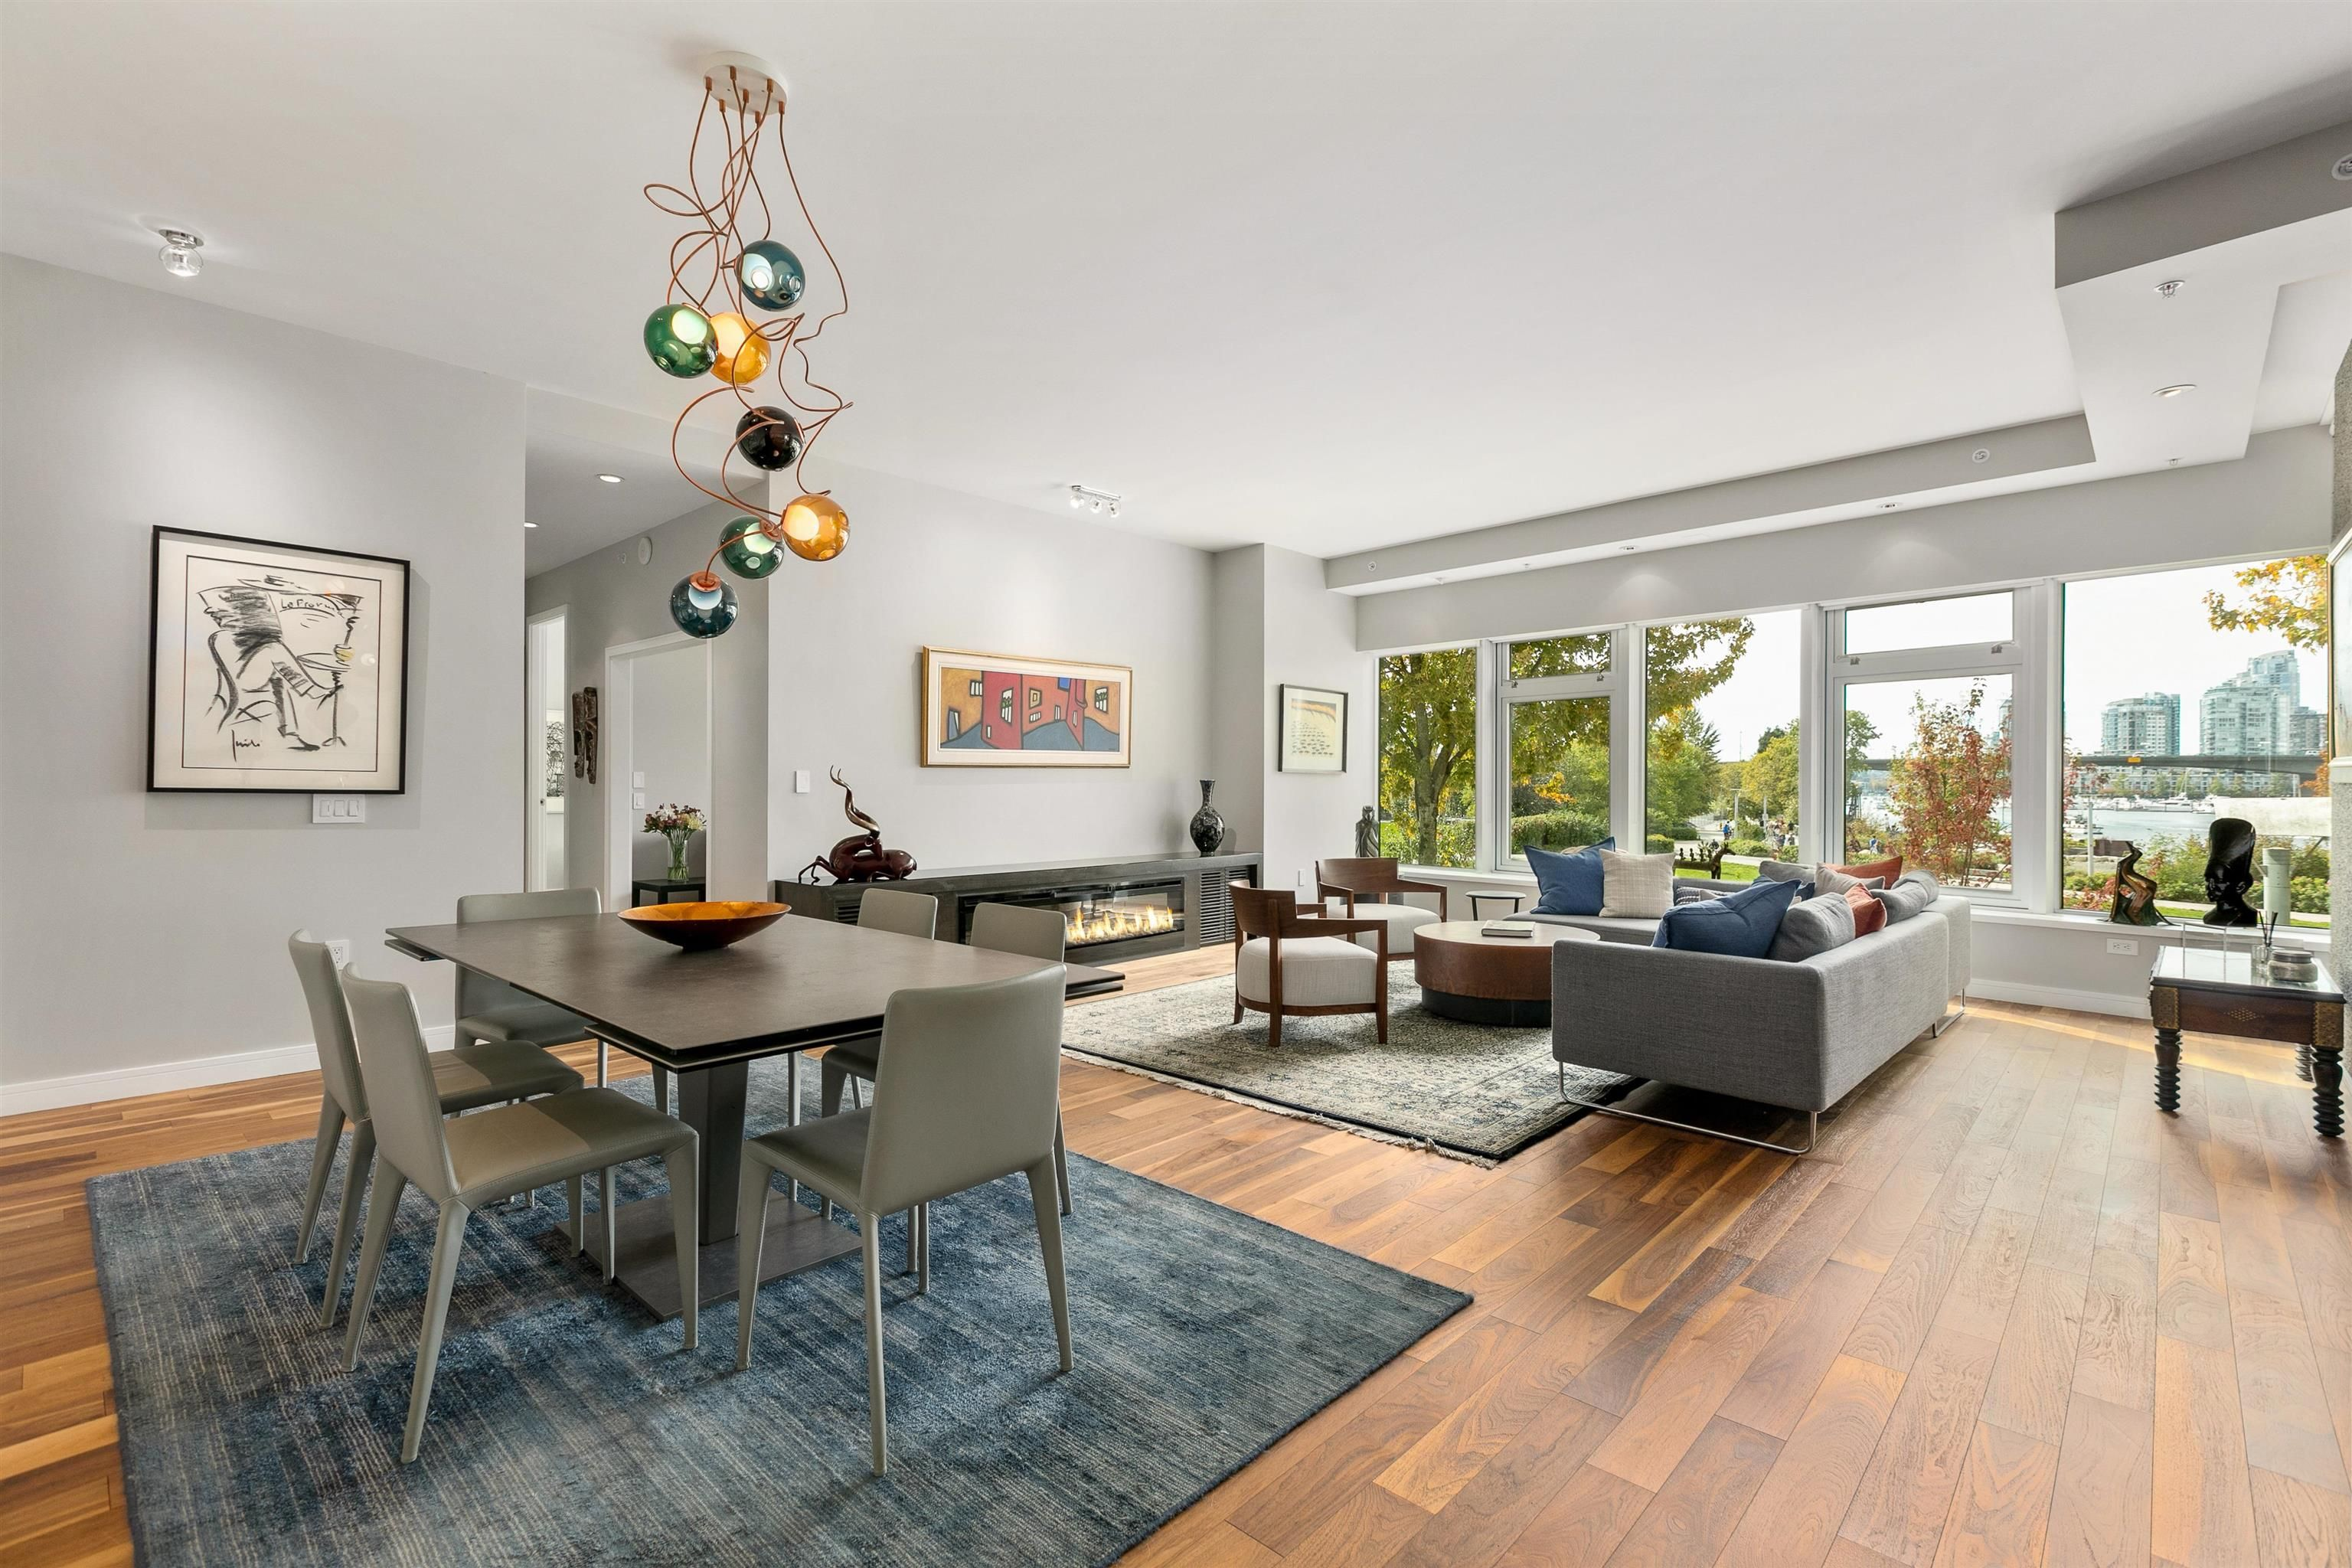 Main Photo: 201 181 ATHLETES WAY in Vancouver: False Creek Condo for sale (Vancouver West)  : MLS®# R2619930